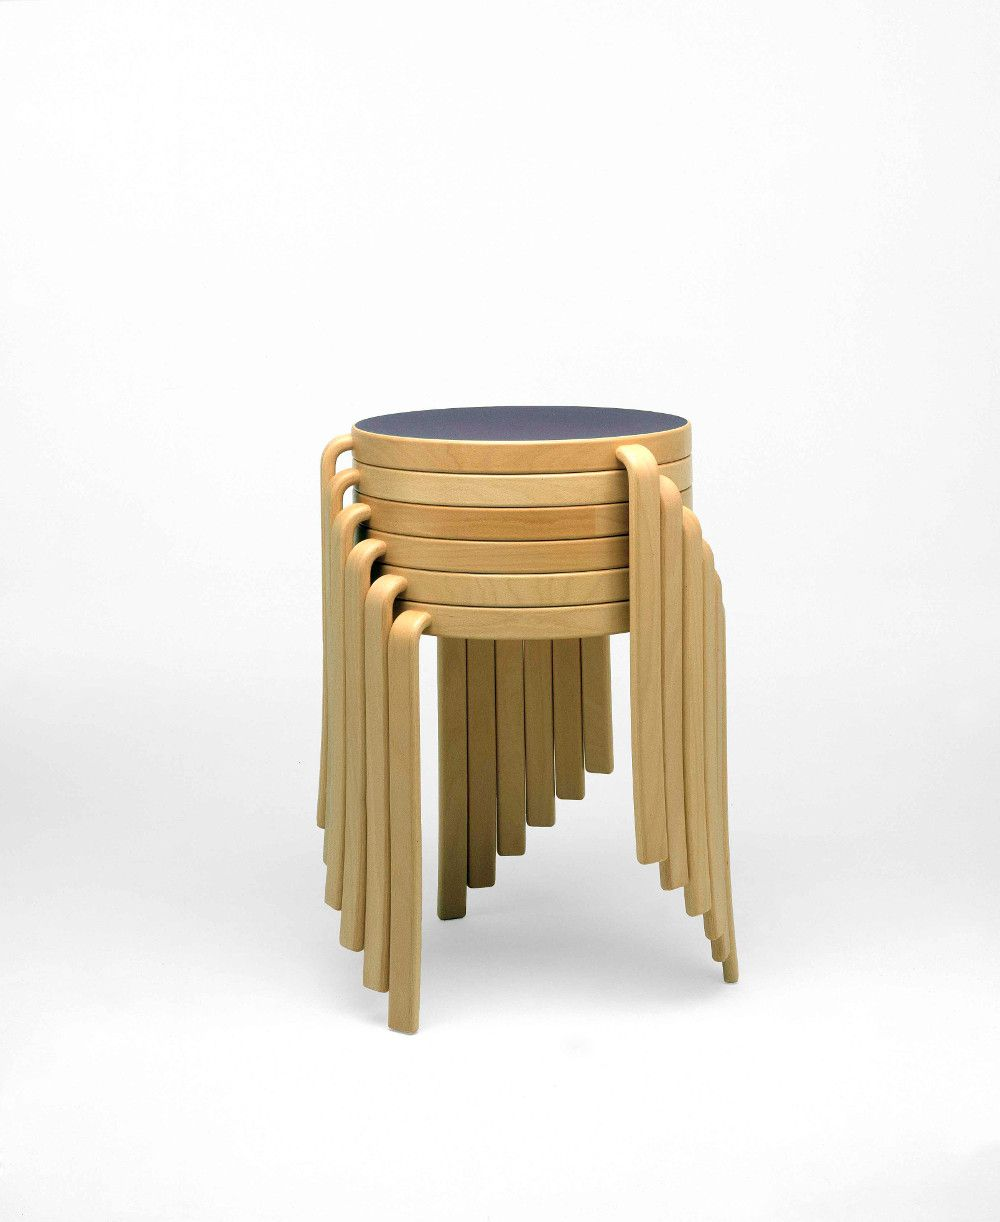 Magnus Olesen 8000 Stackable Stools For Easy Storage Jpg Image Jpeg 1000 1222 Pixels Chaise Fauteuil Coussin